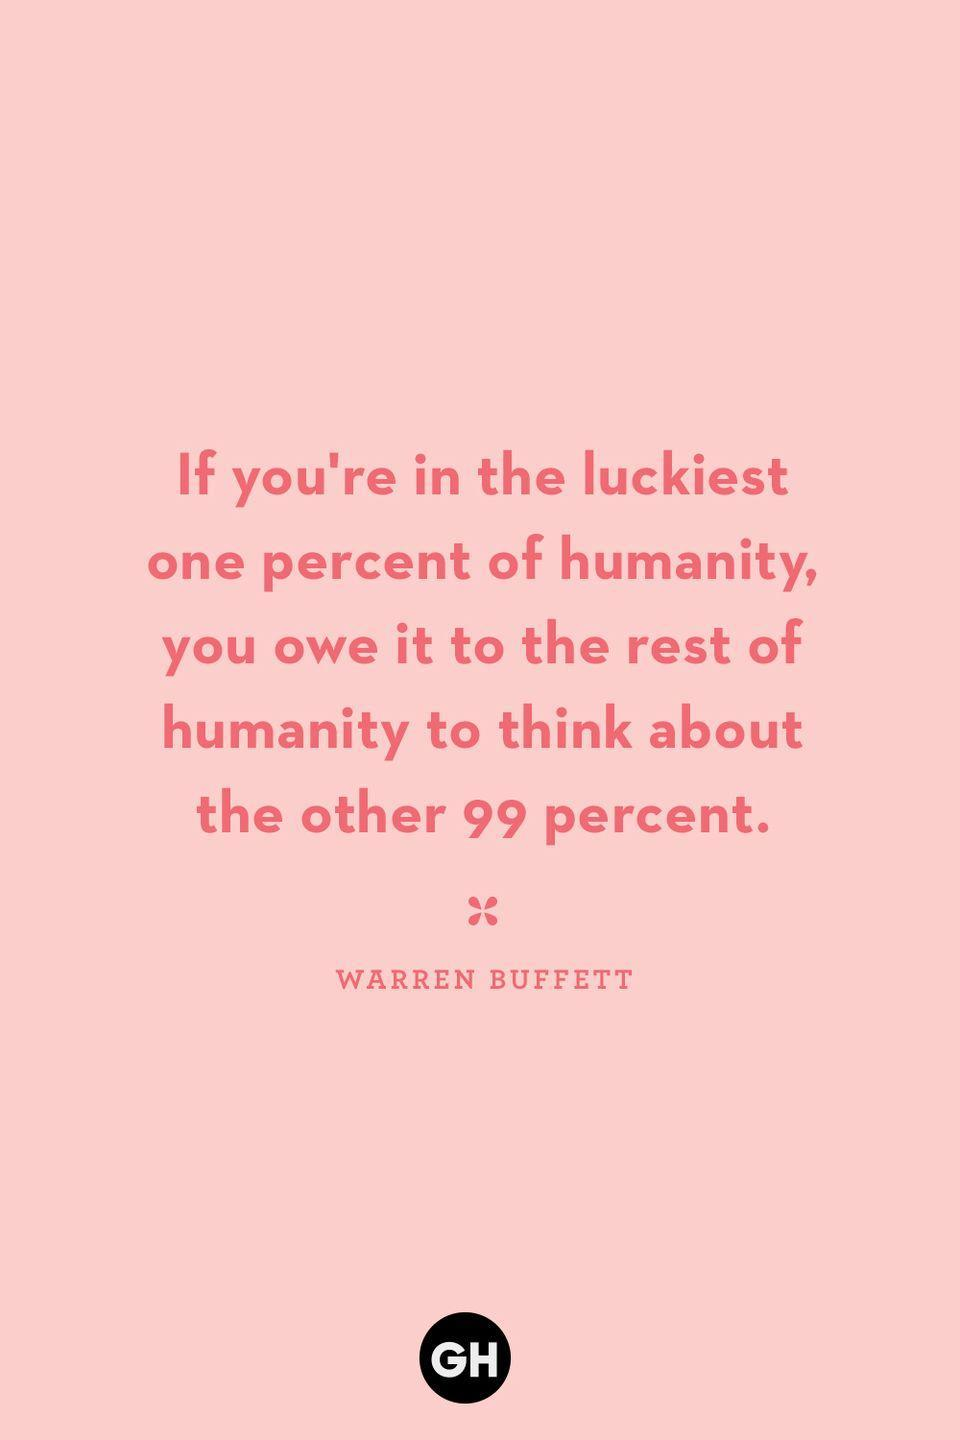 <p>If you're in the luckiest one percent of humanity, you owe it to the rest of humanity to think about the other 99 percent.</p>